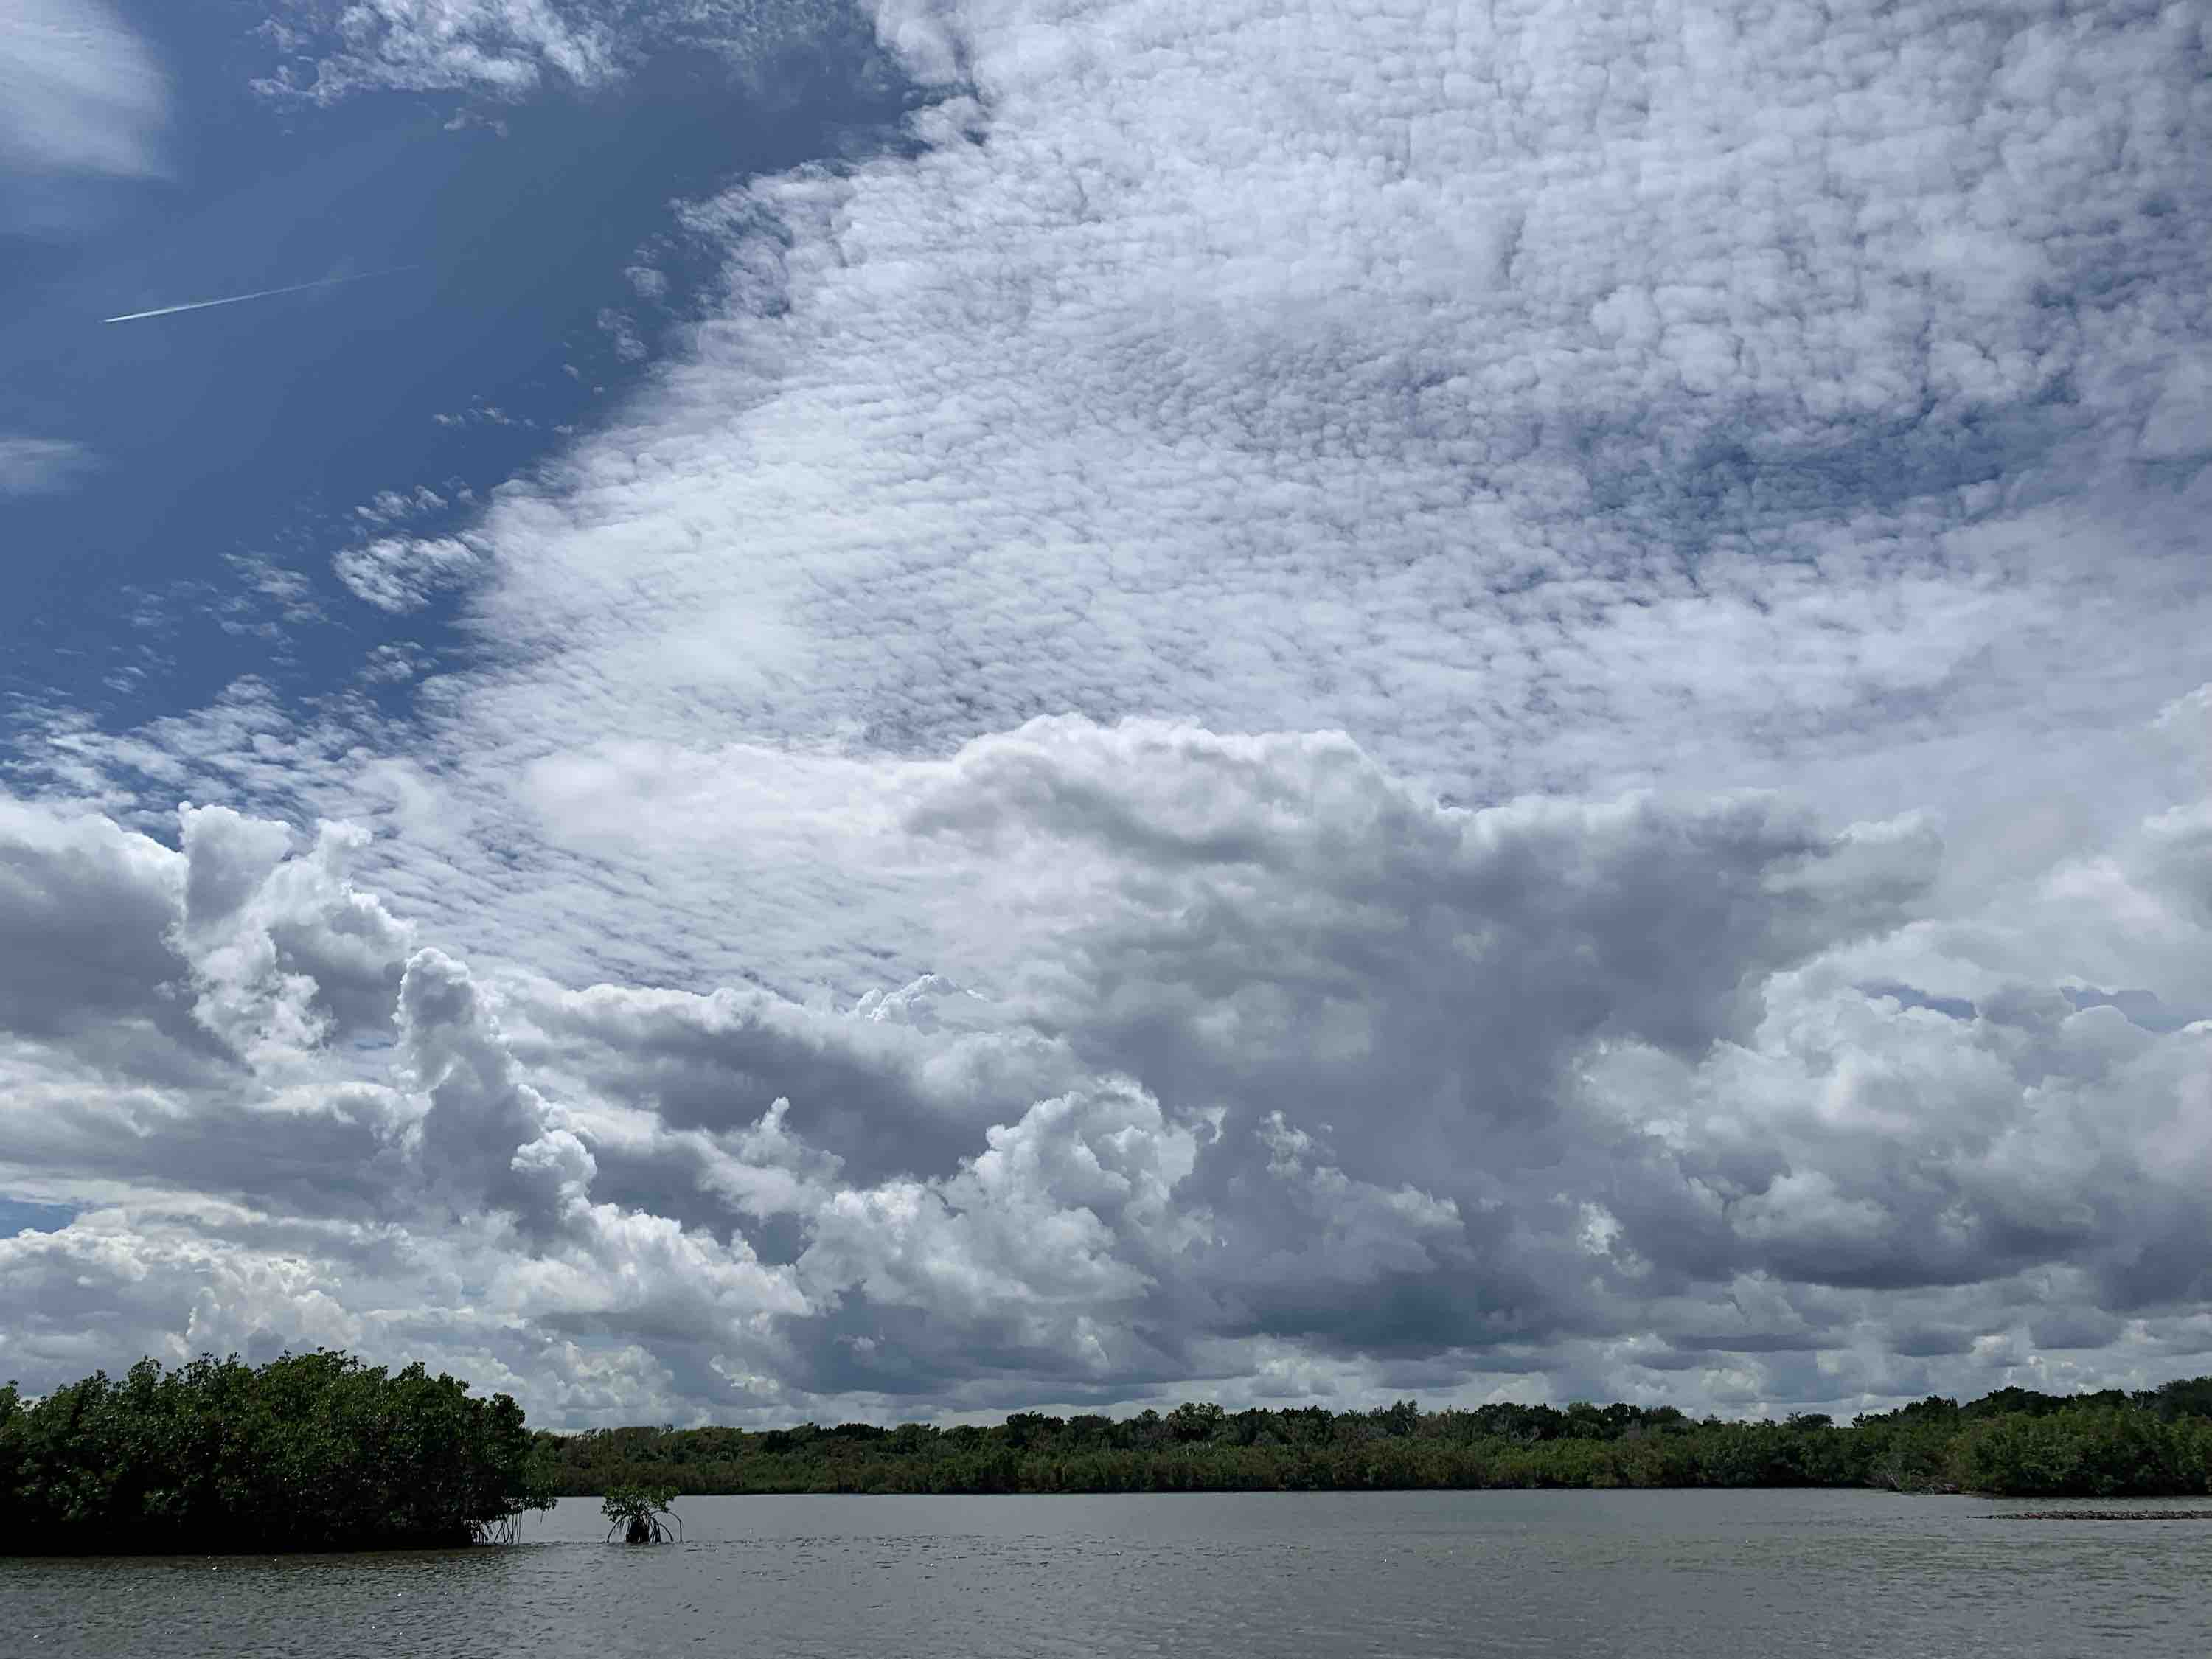 clouds gathering and building over the Indian River